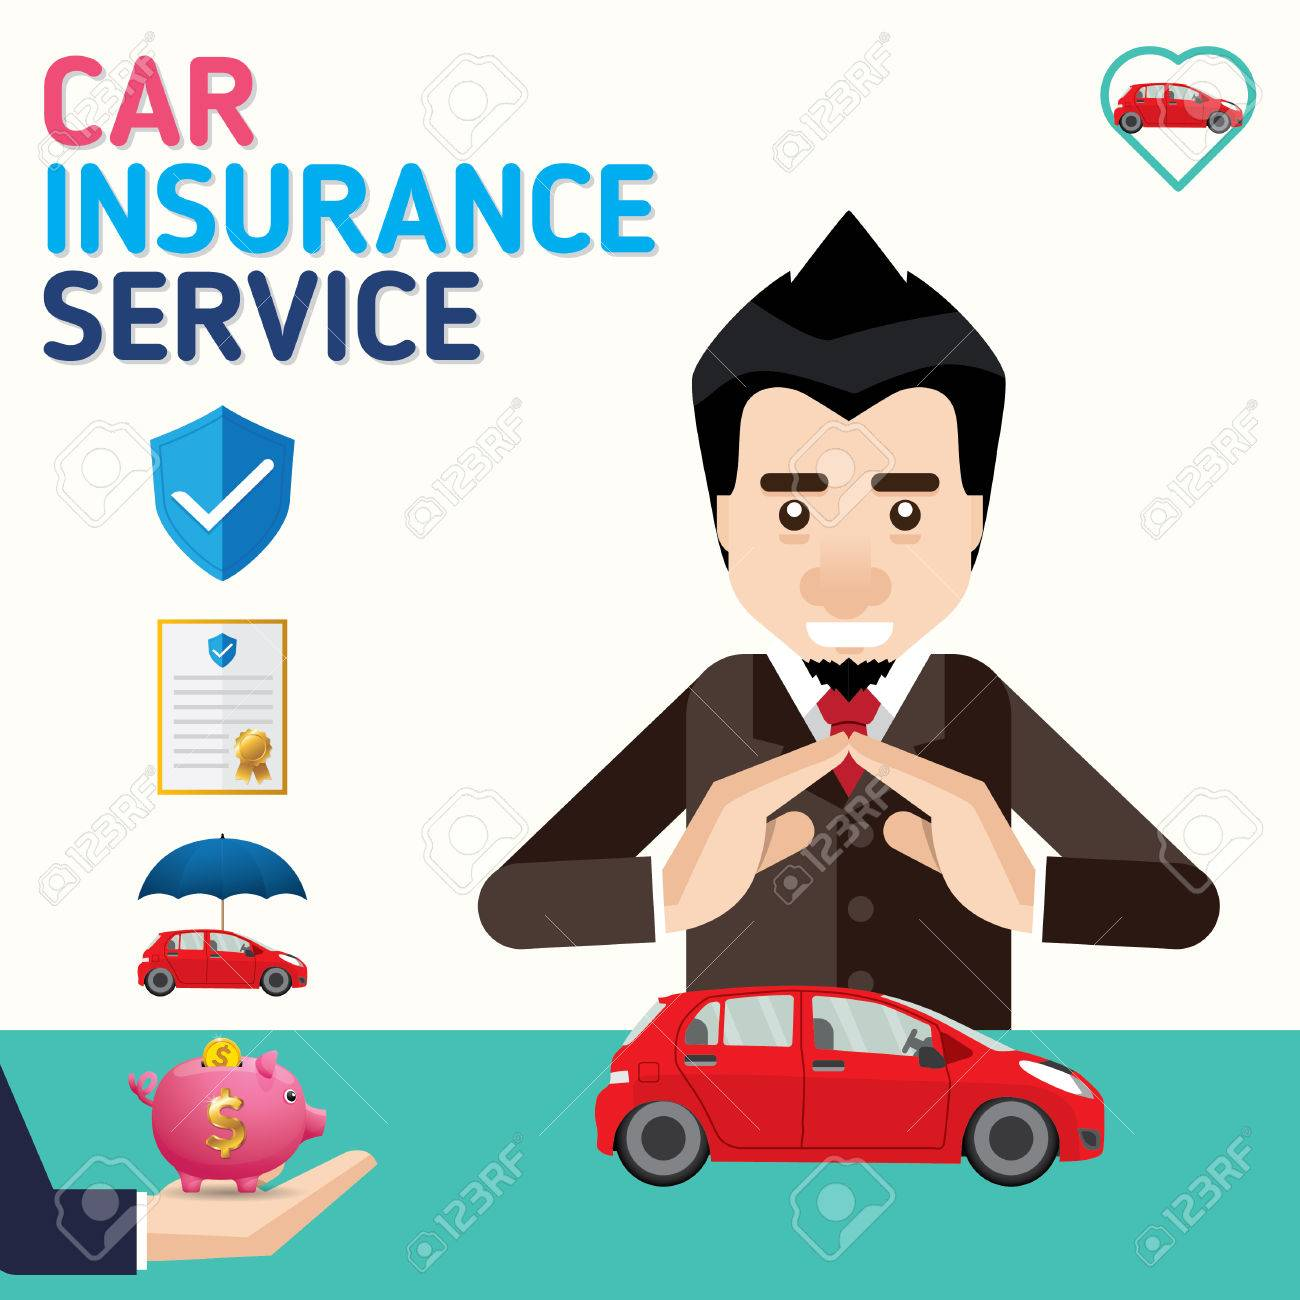 Available for pc, ios and android. Car Insurance Business Service Icons Template Can Be Used For Workflow Layout Banner Diagram Vector Illustration Royalty Free Cliparts Vectors And Stock Illustration Image 68535731